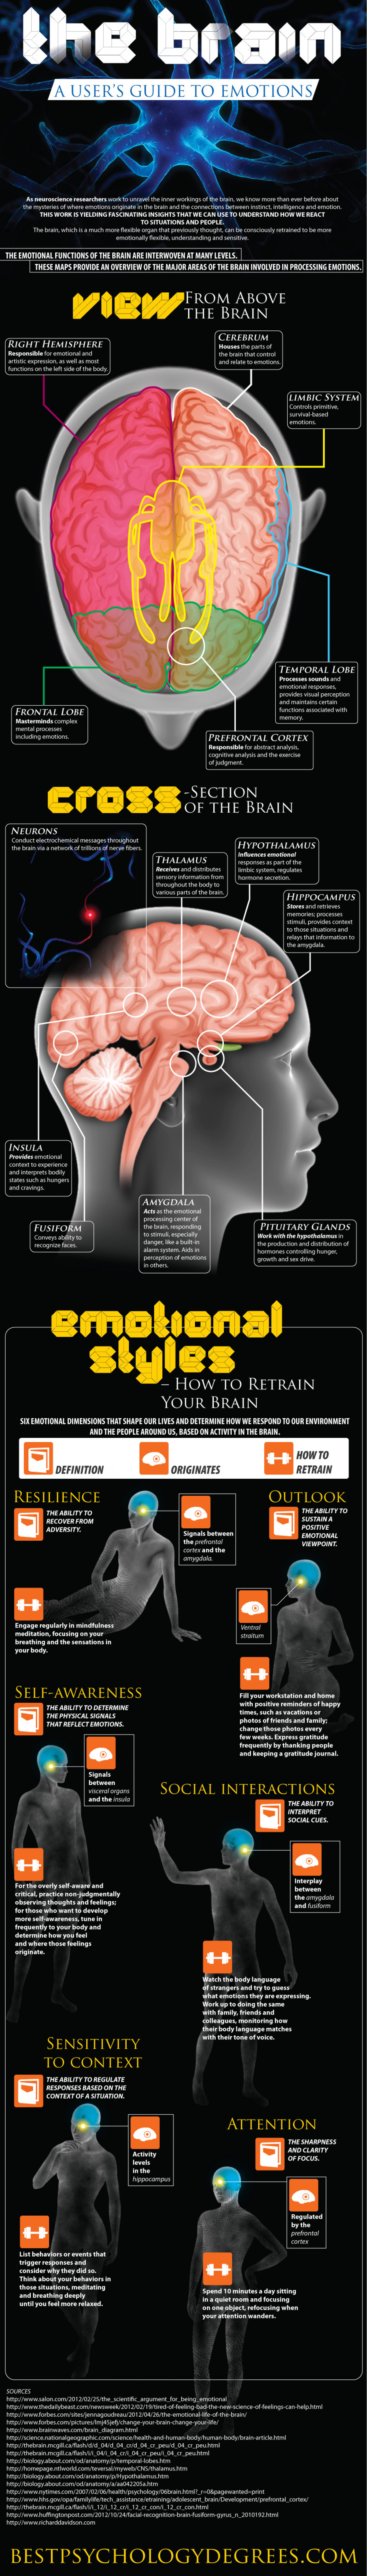 The Brain: A User's Guide to Emotions Infographic